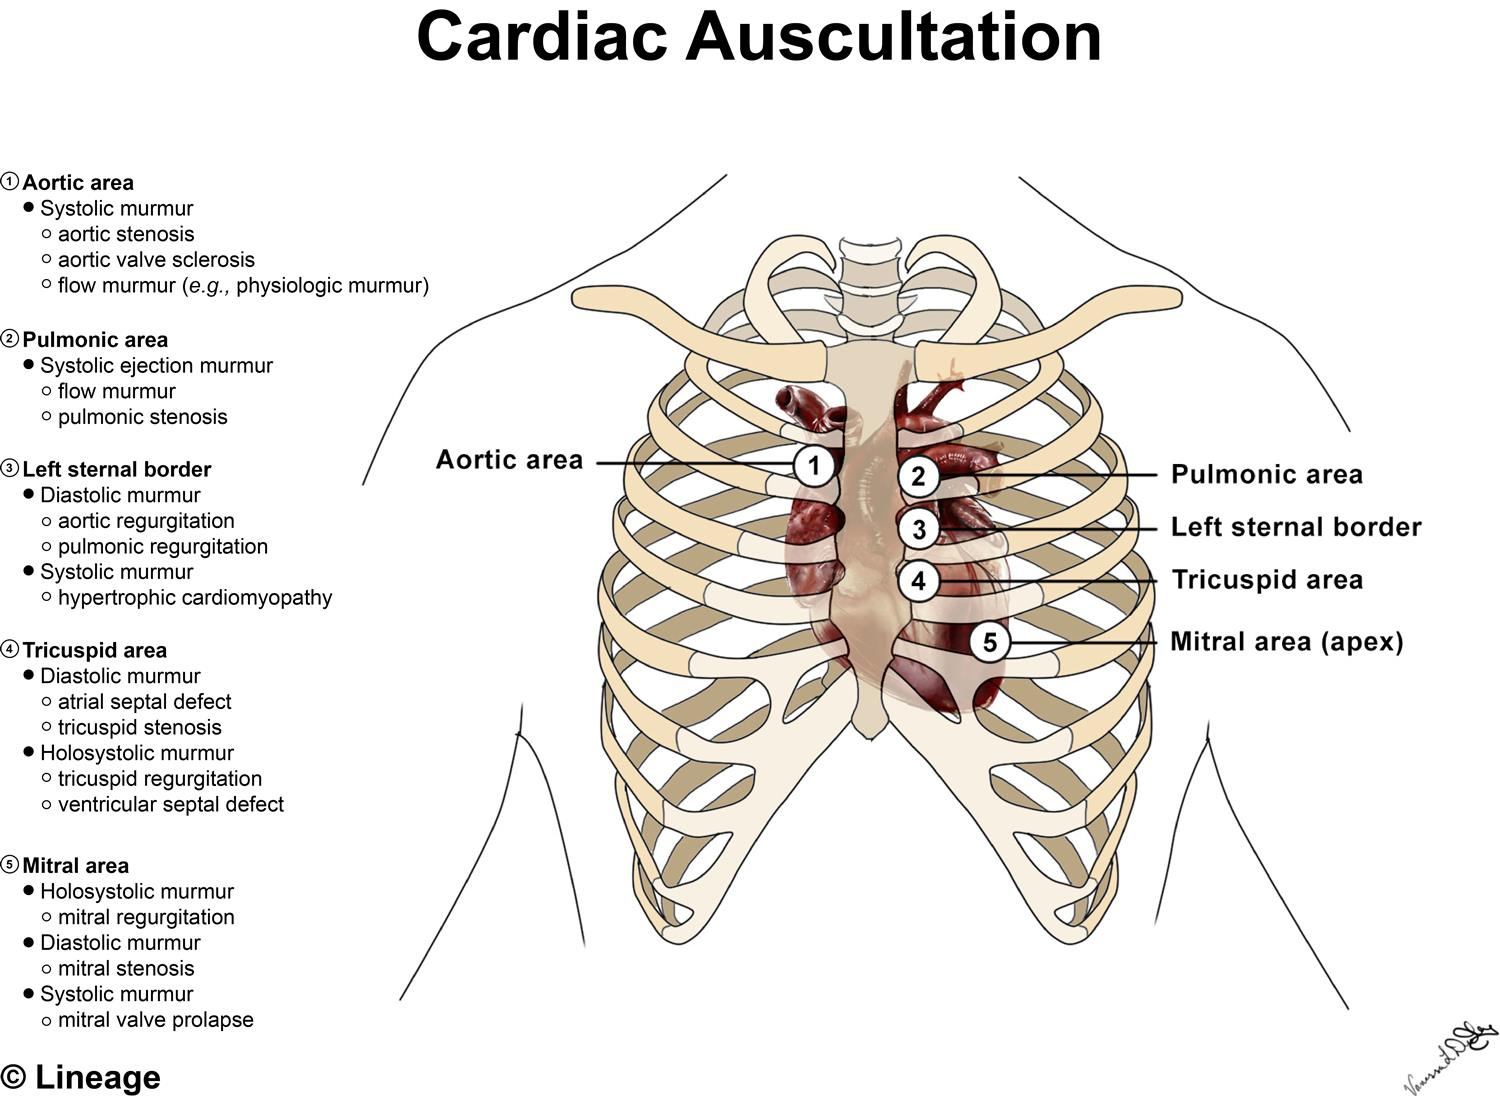 https://upload.medbullets.com/topic/108013/images/082417vldstep1cardiacheartauscultation-moises edits.jpg